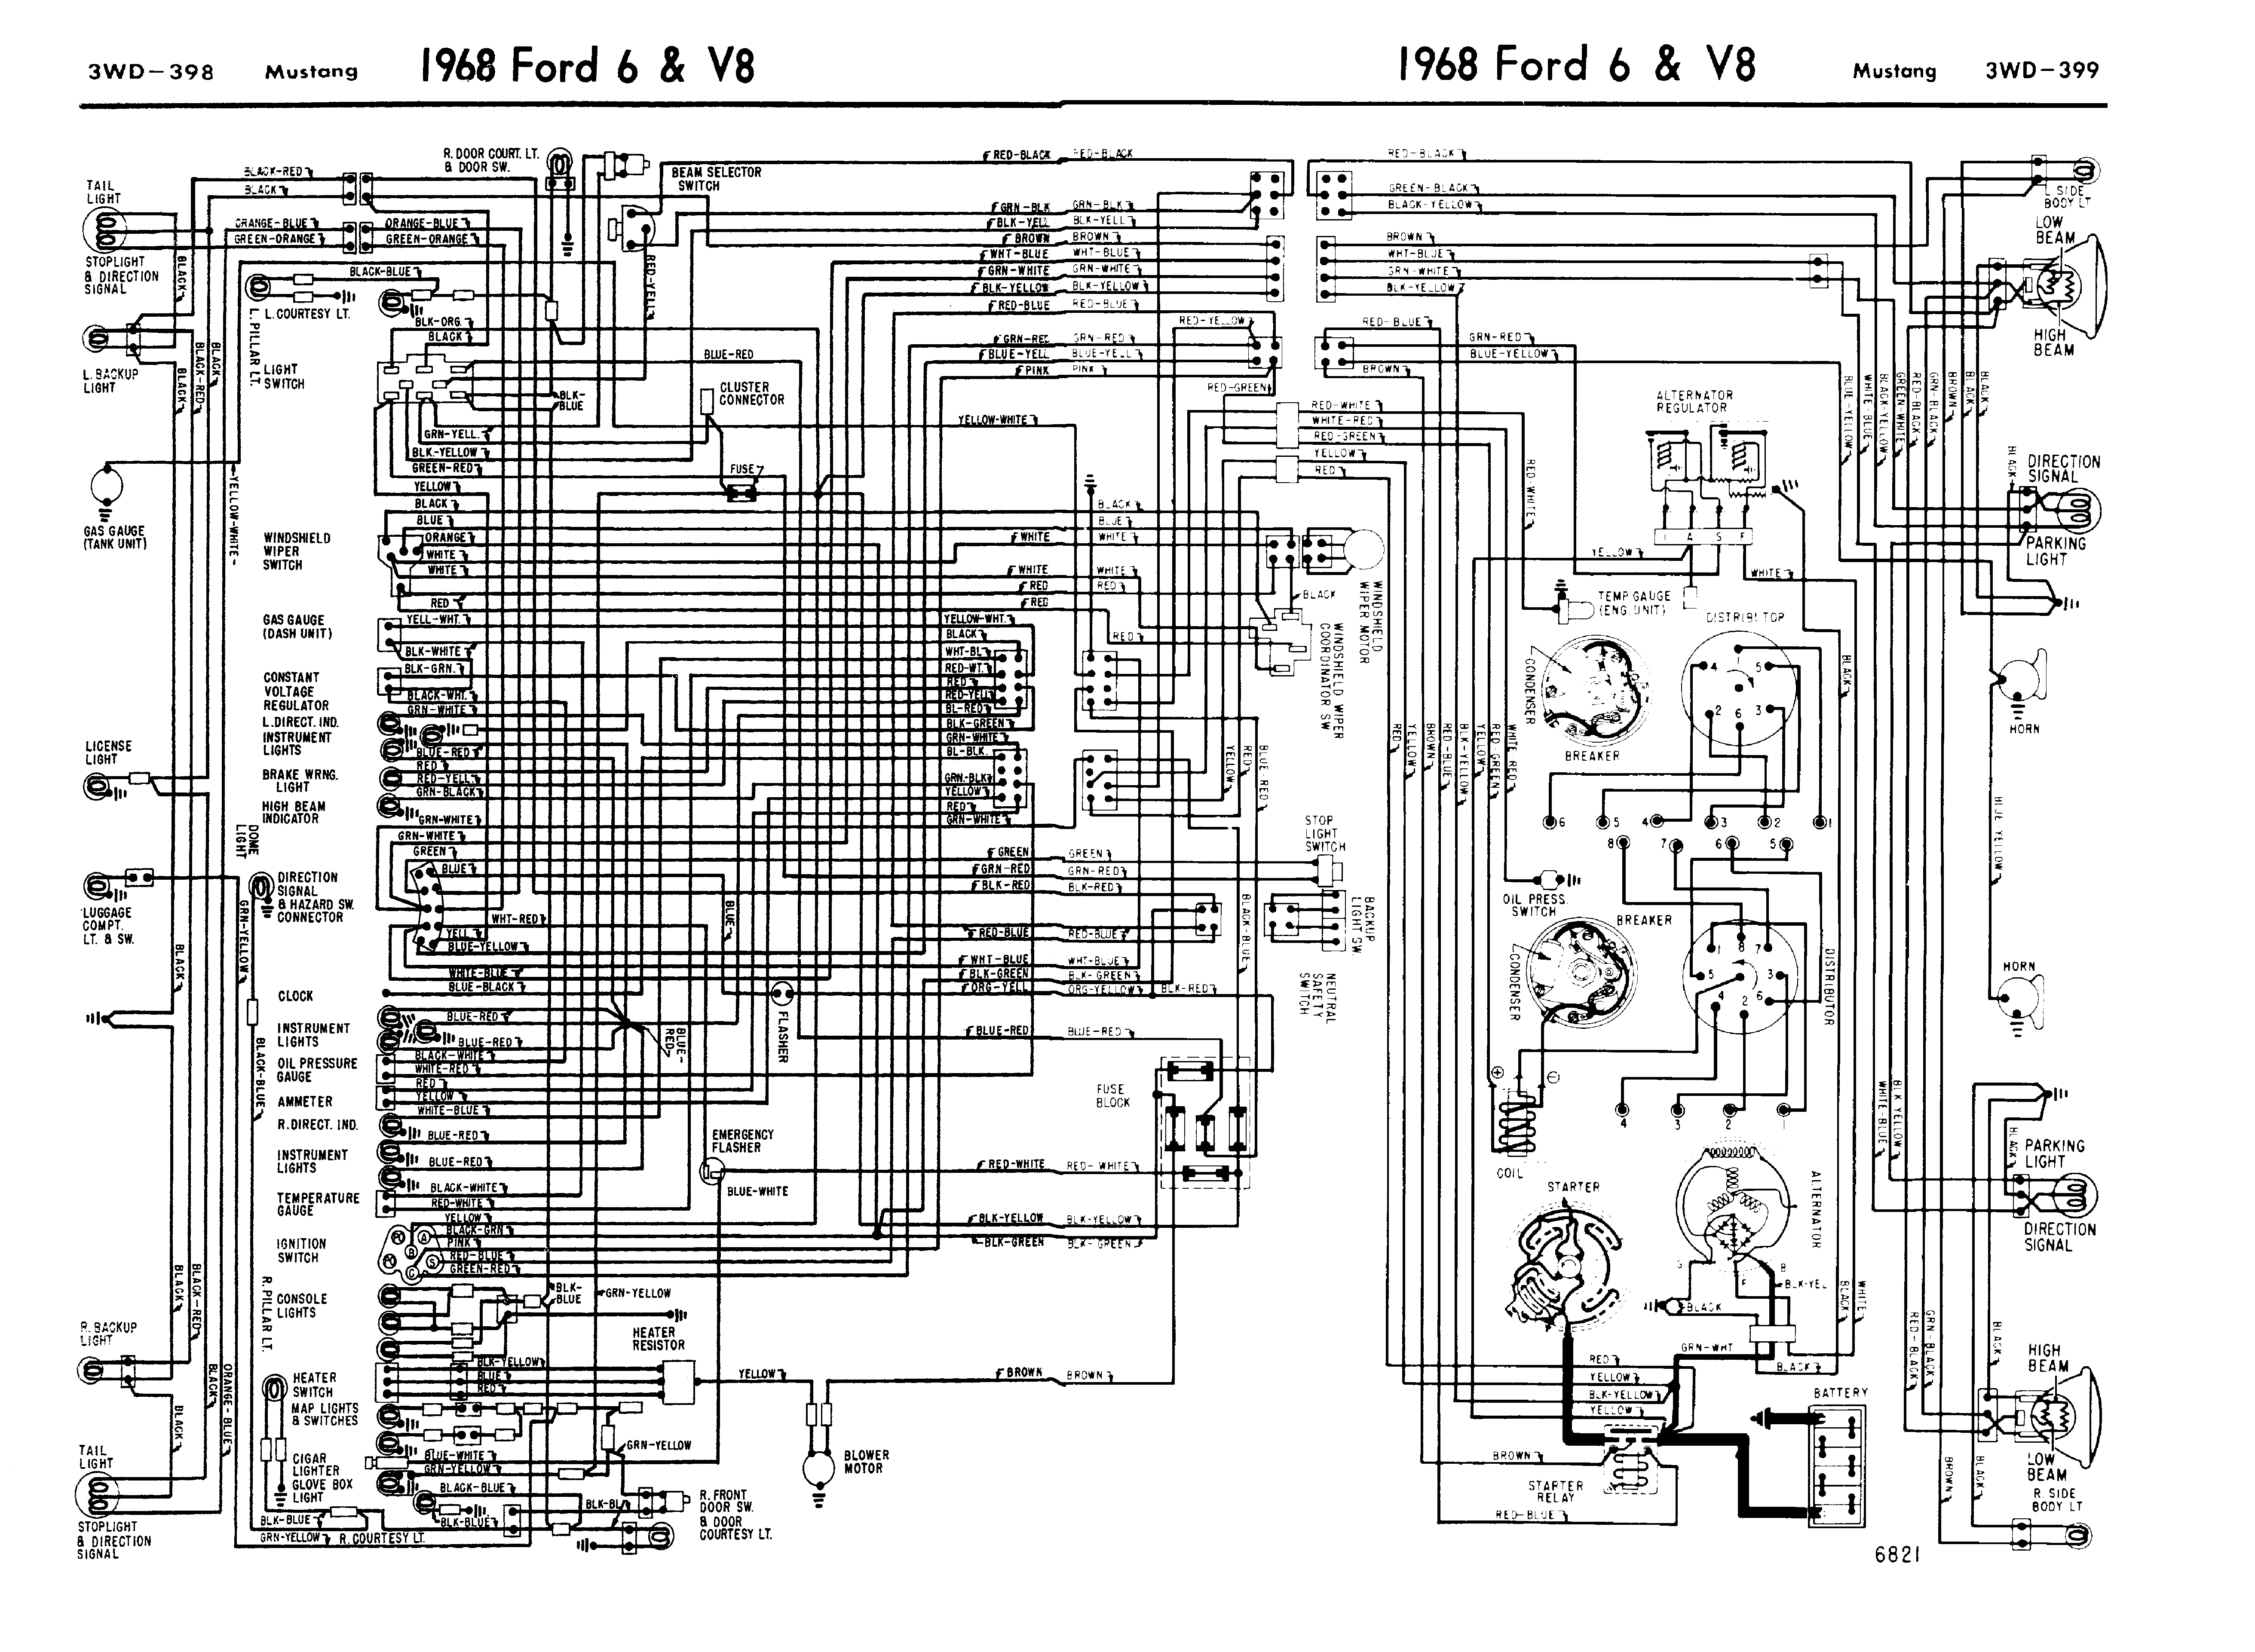 small resolution of wiring harness diagram ford mustang wiring diagram postford mustang wiring harness diagrams wiring diagram img 1968